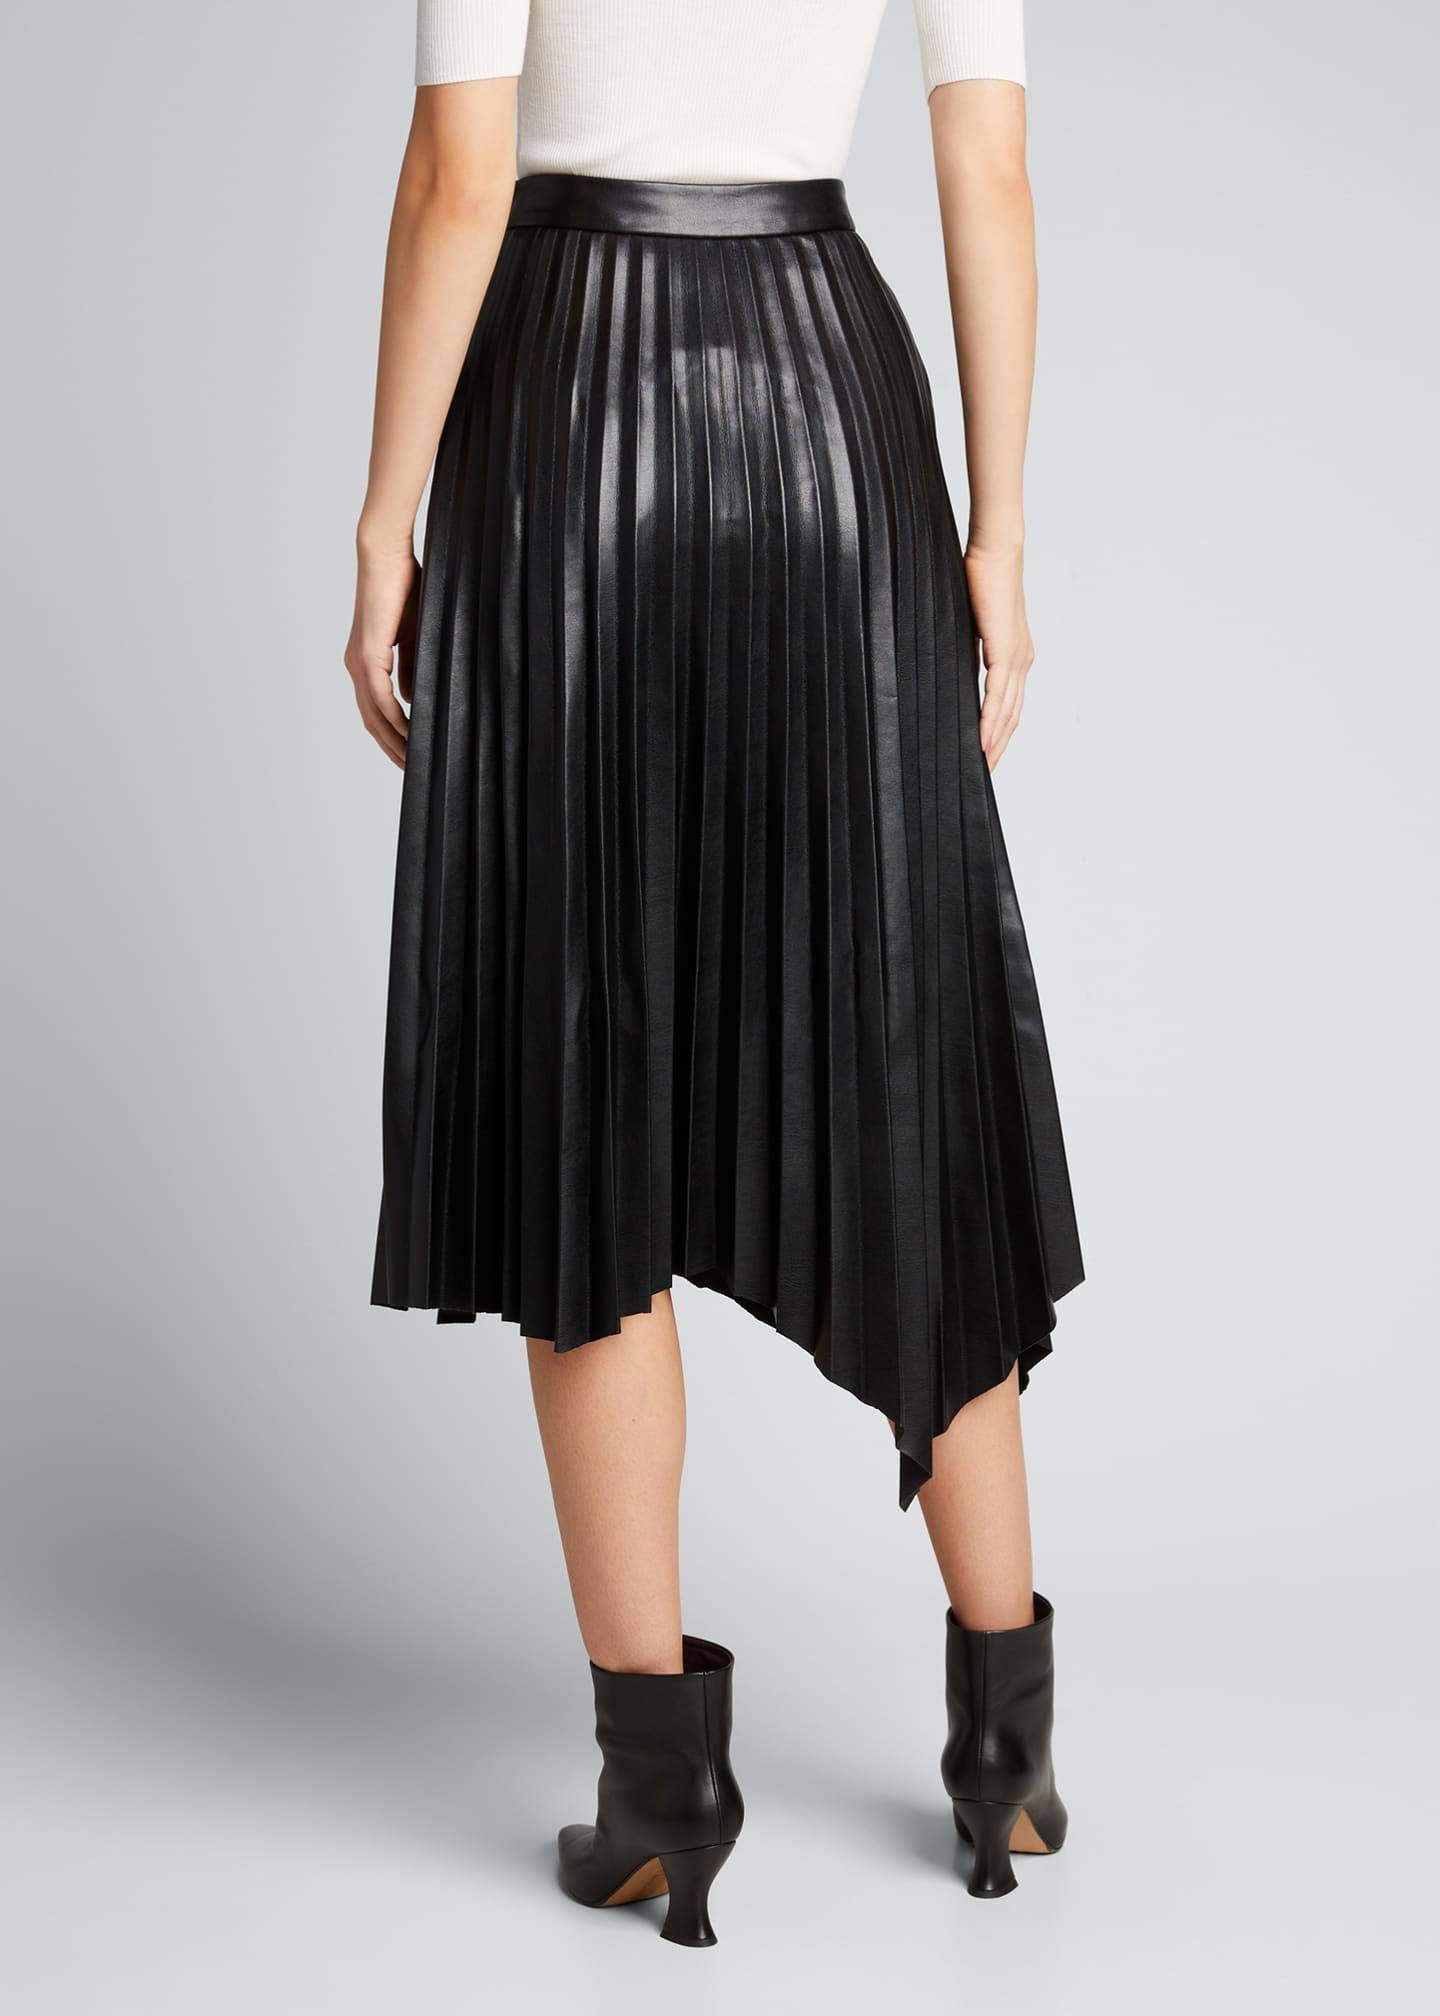 Image 2 of 5: Jayla Vegan Leather Pleated Midi Skirt